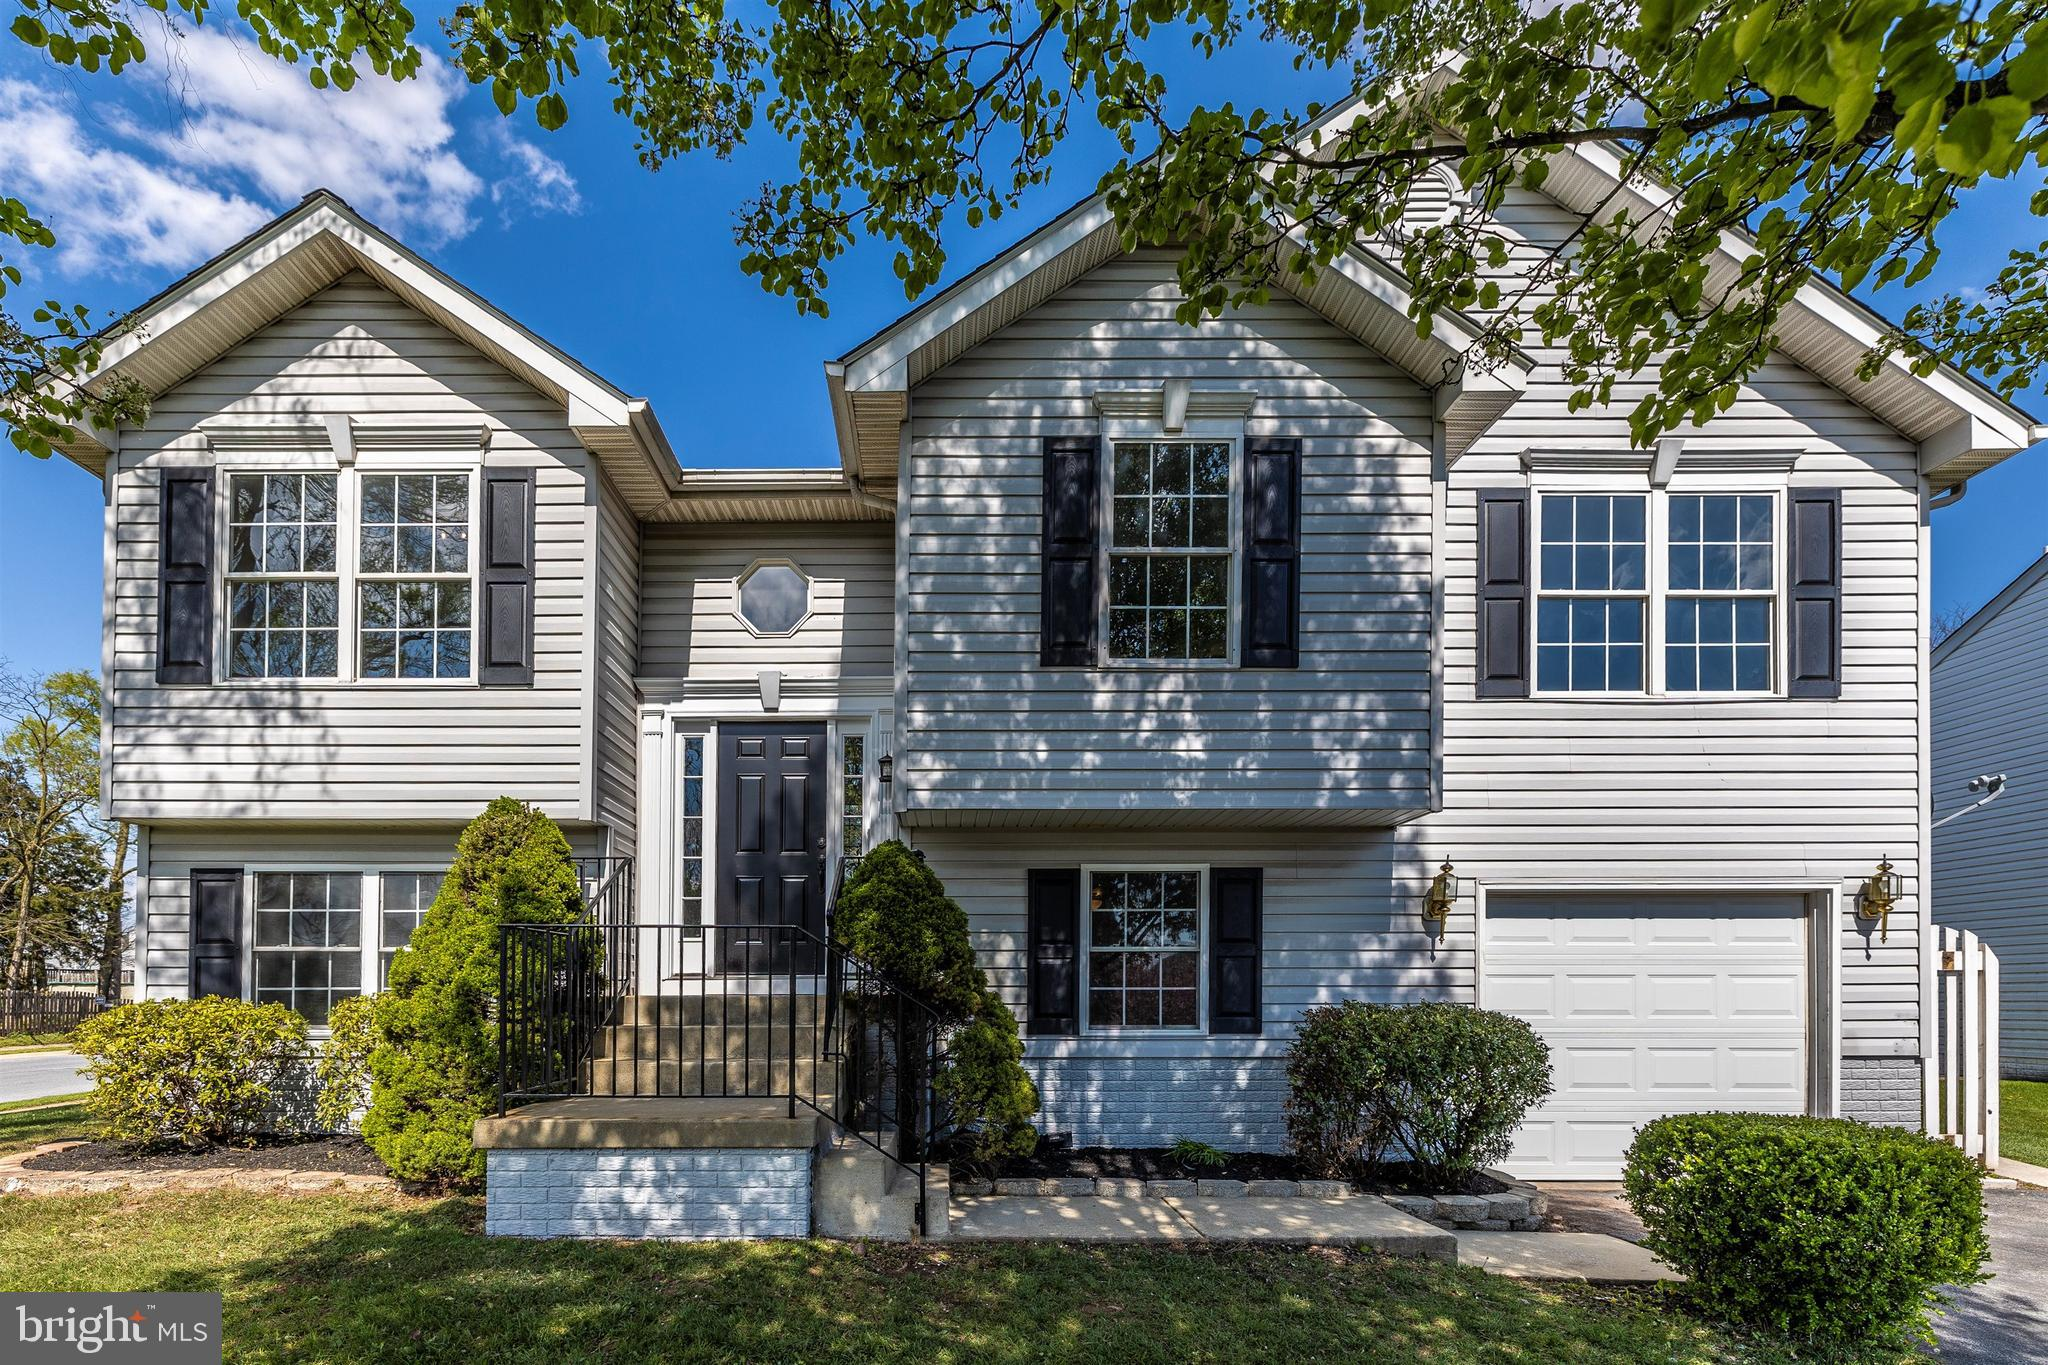 Please follow all COVID-19 guidelines. WELCOME HOME!! Beautiful renovation! This 4 bedroom 3 full ba